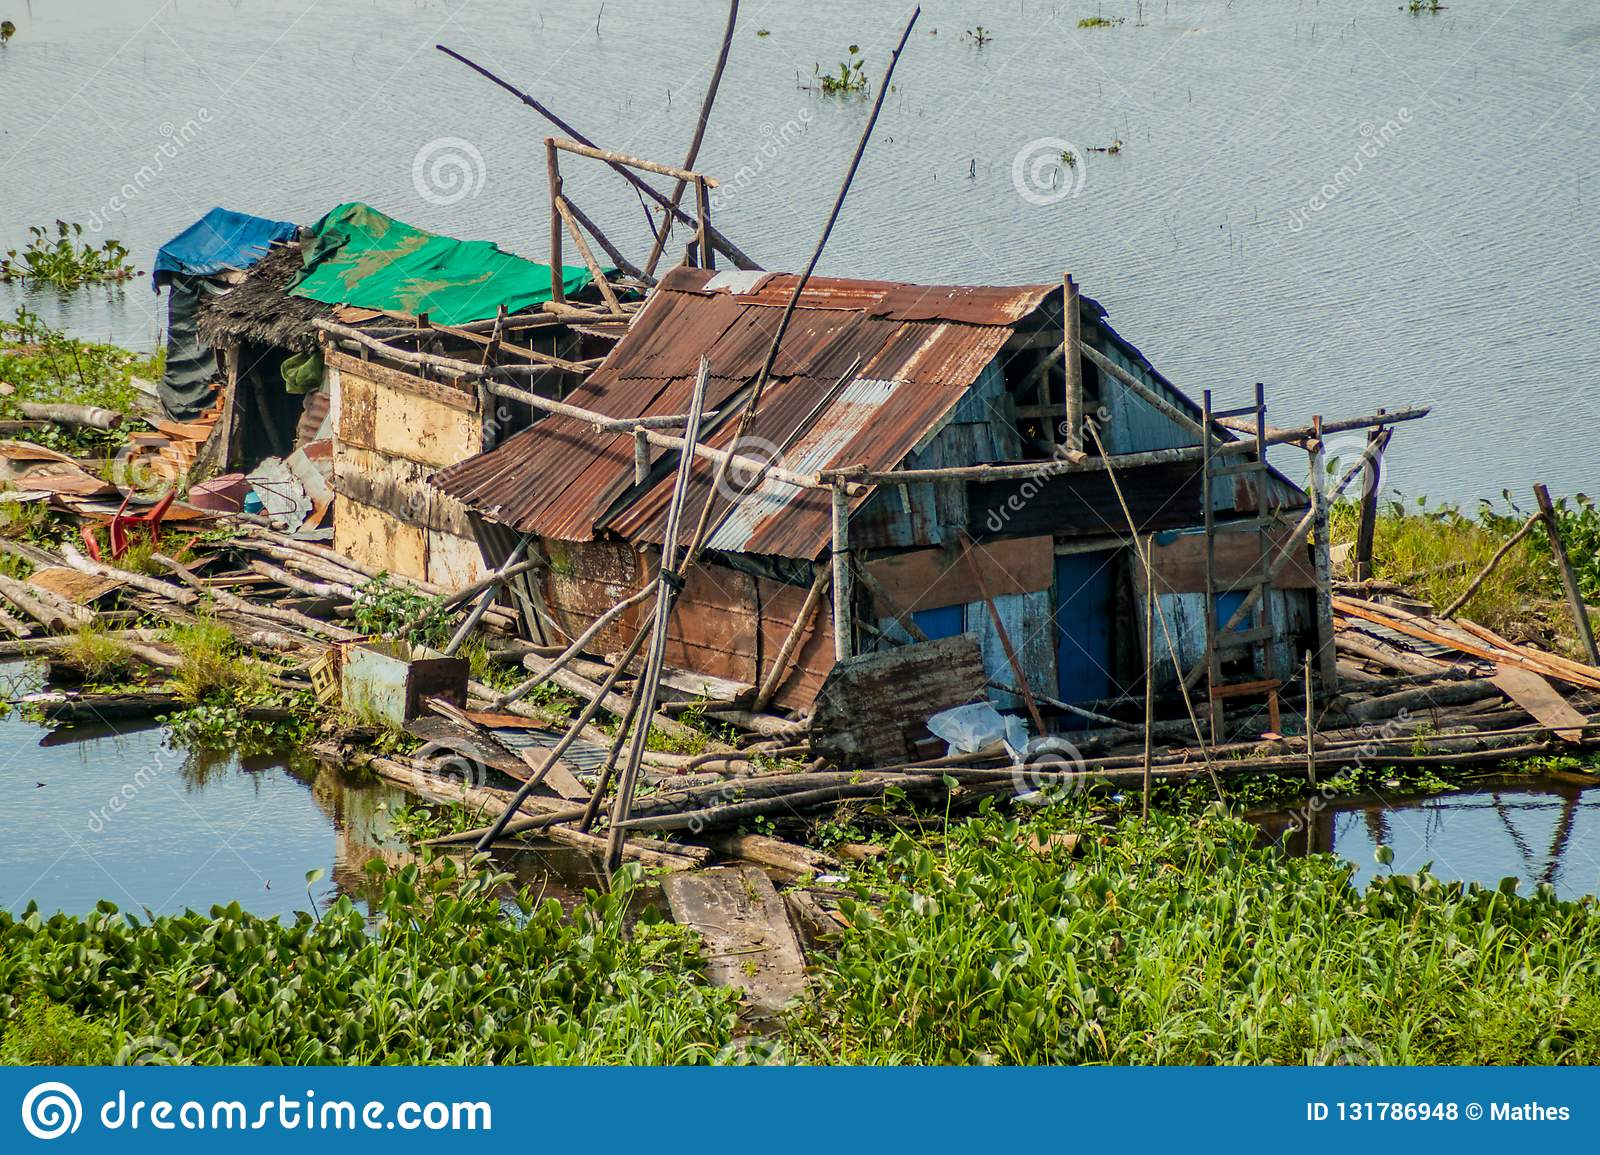 One of poor houses of a shantytown in Iquitos